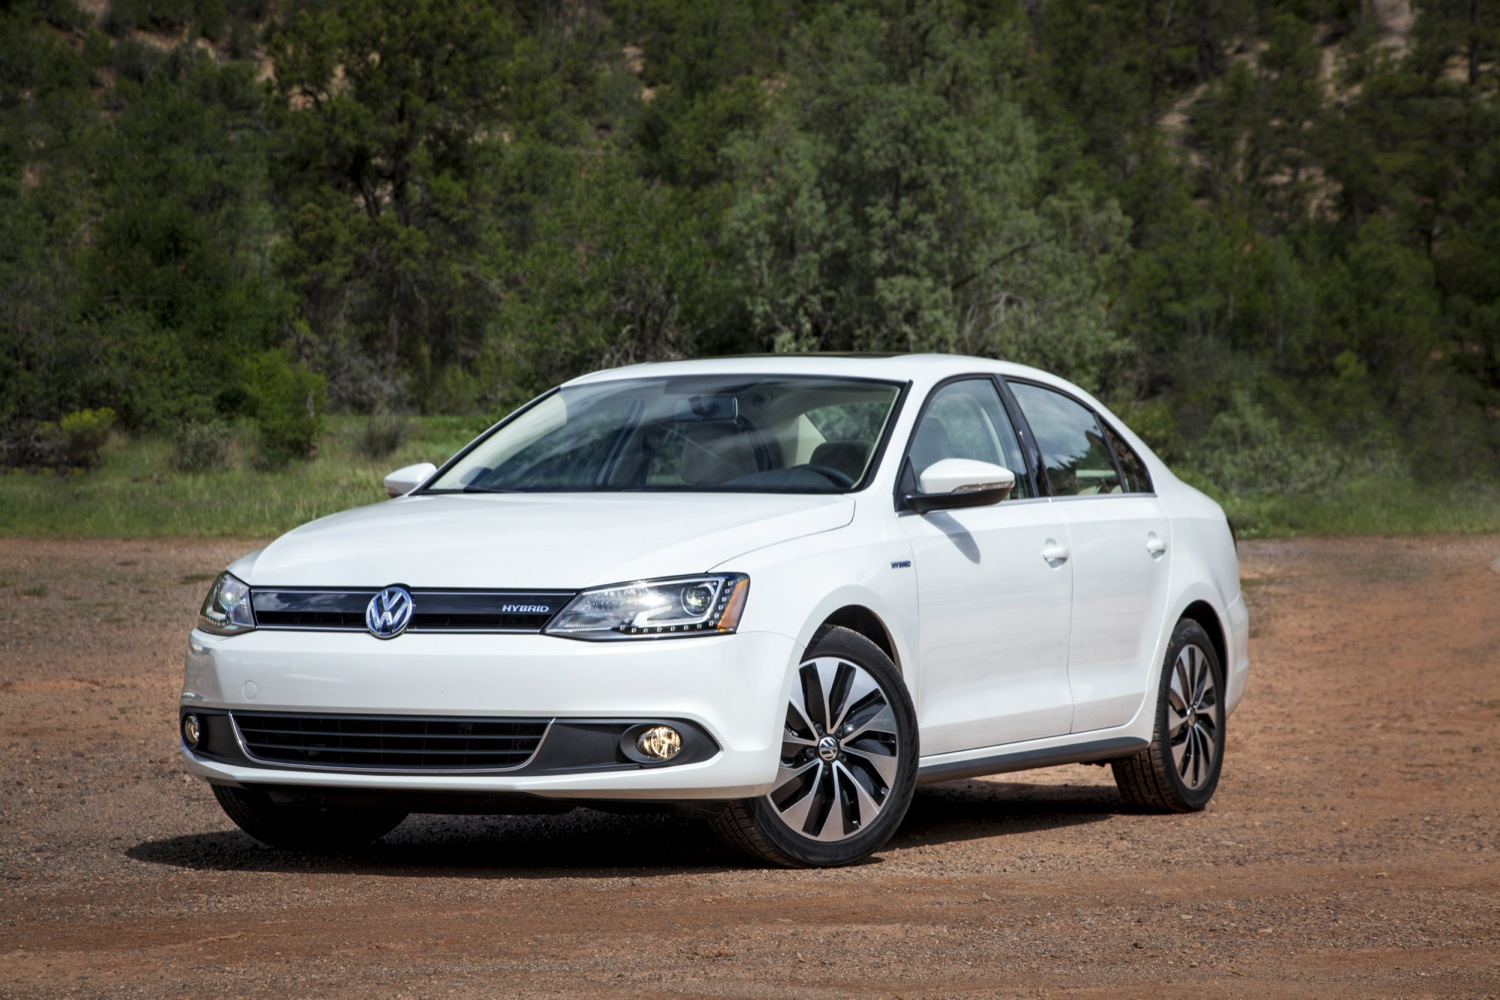 2014 vw jetta gets 5 star safety rating by nhtsa 39 s ncap. Black Bedroom Furniture Sets. Home Design Ideas